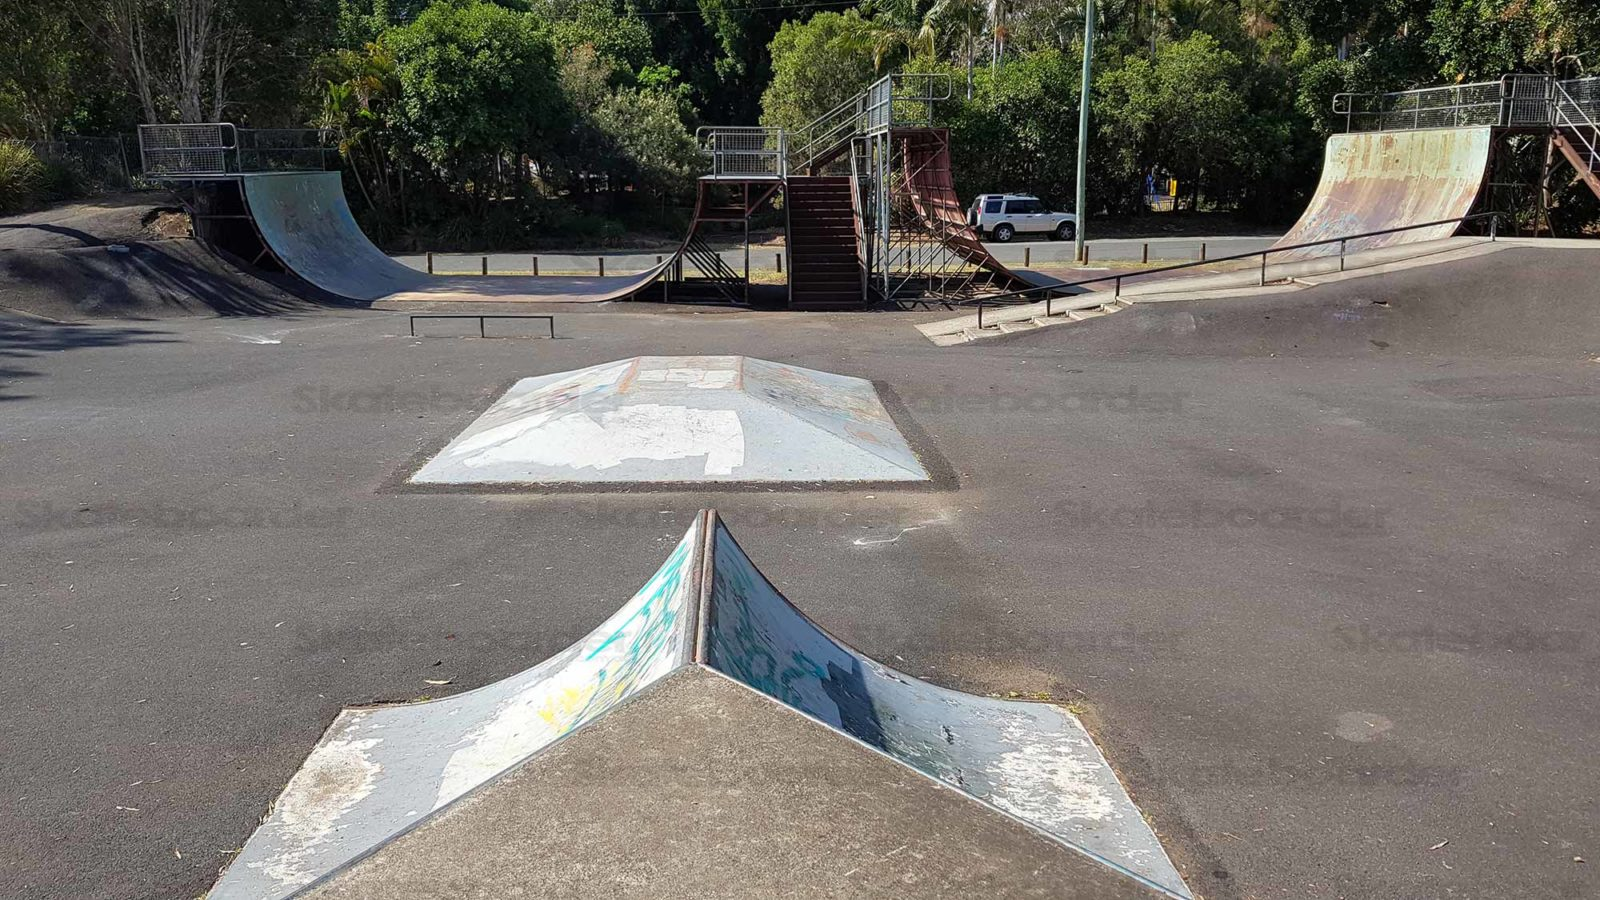 Spine, pyramid, ramps